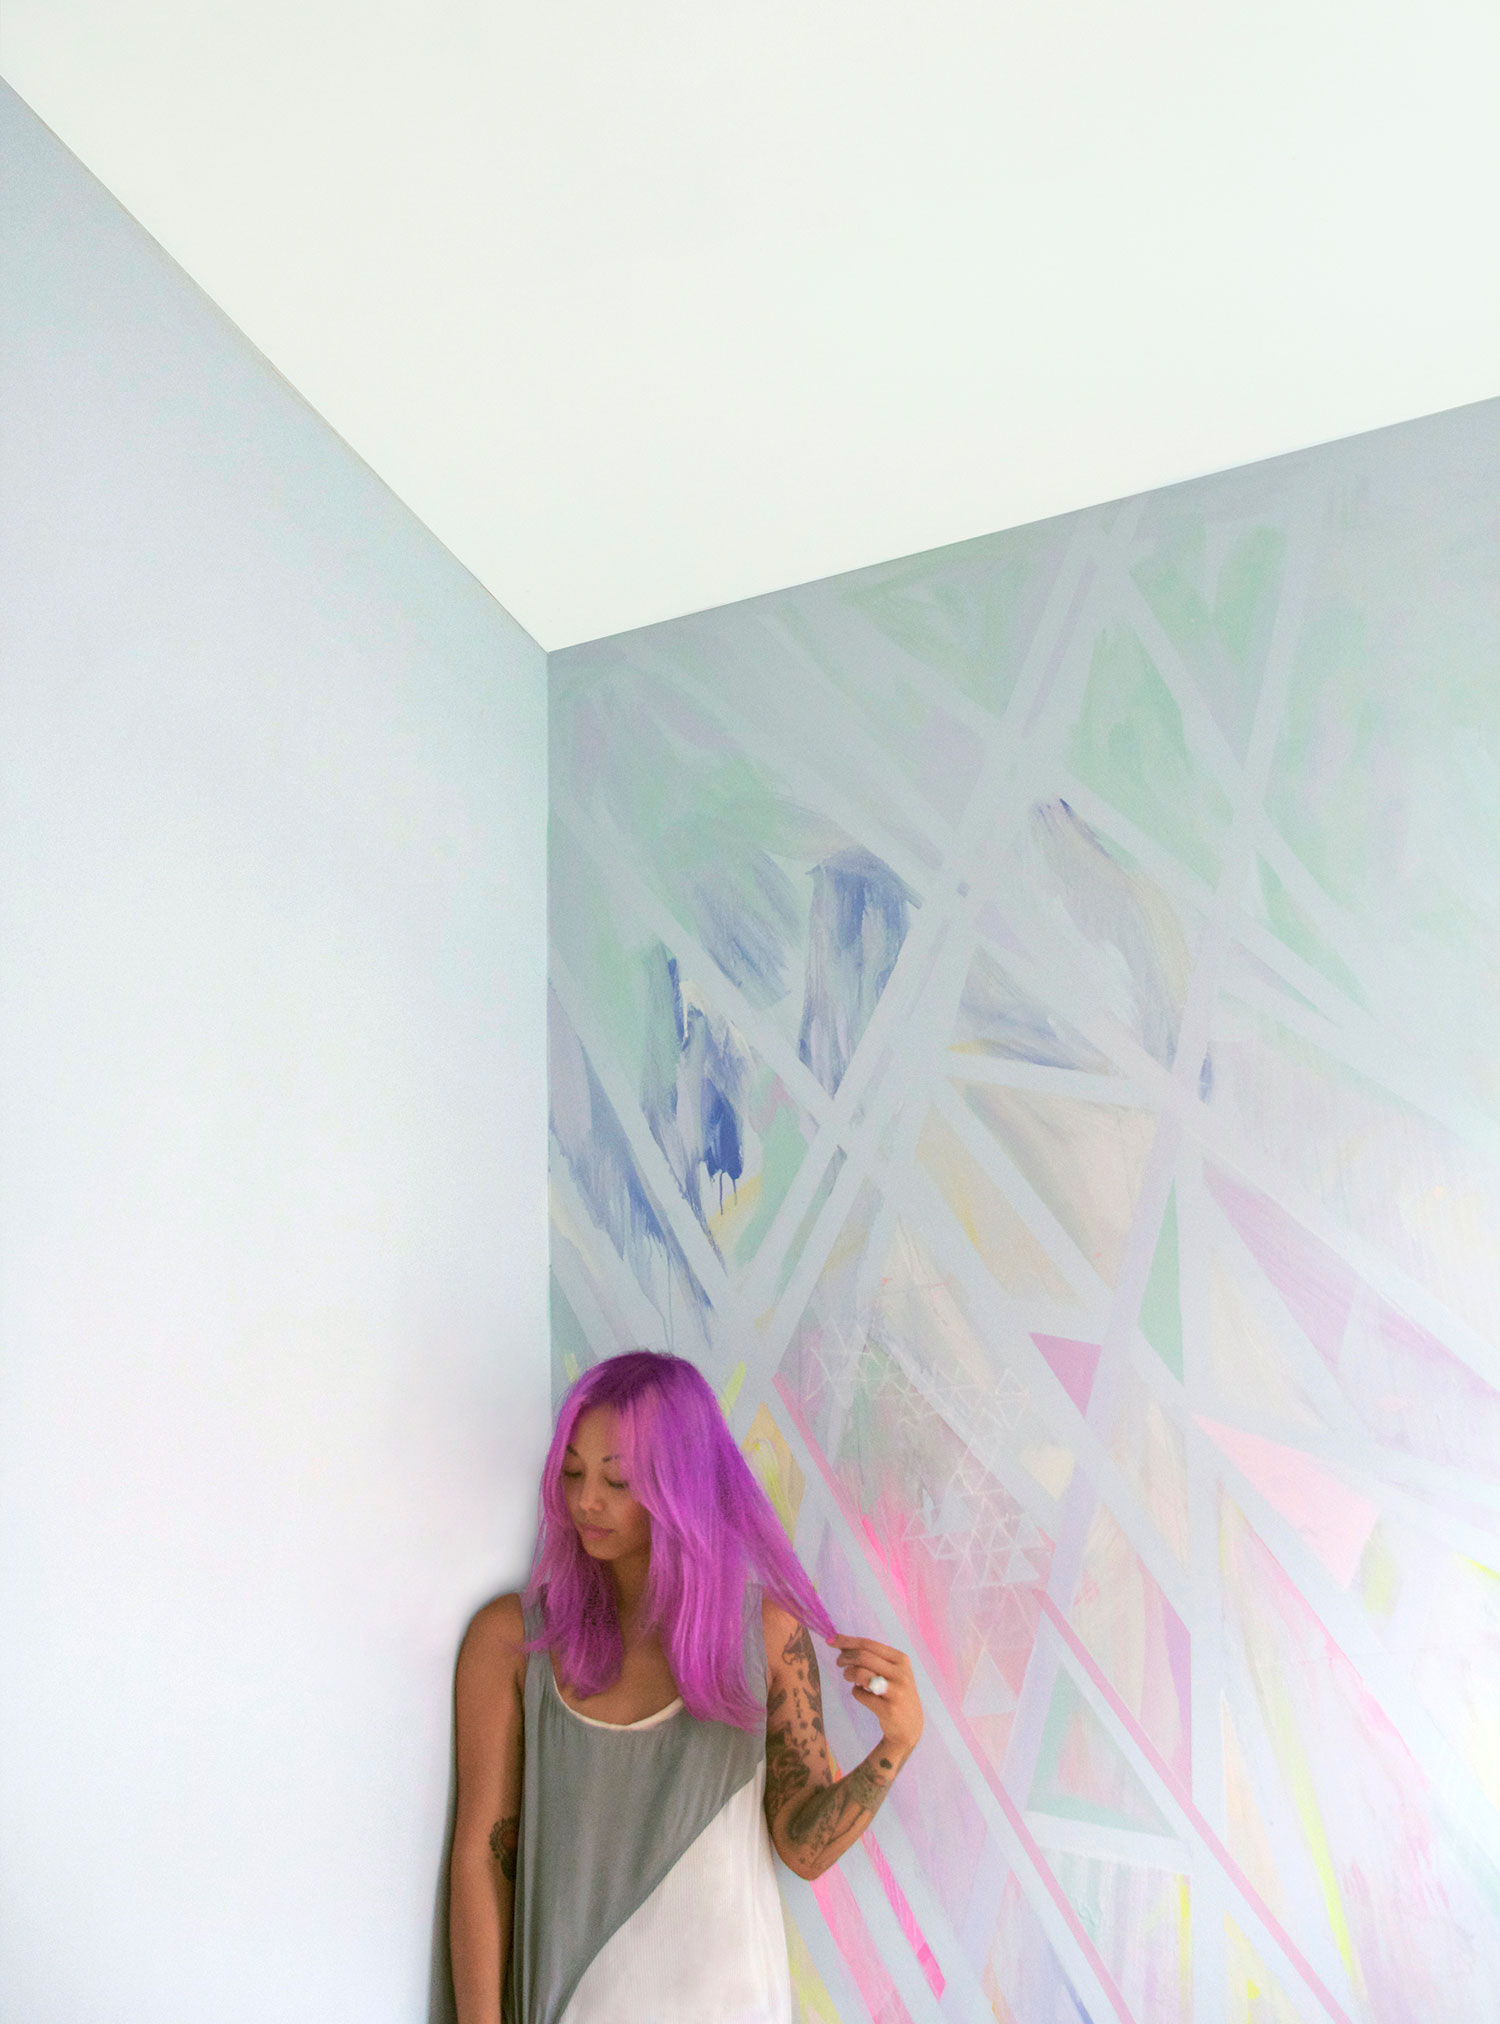 Abstract geometric prism wall art mural painted in pastel colors located in NYC bedroom, styled interior design shoot, model has magenta pink dyed hair, arm tattoos and silk designer dress.